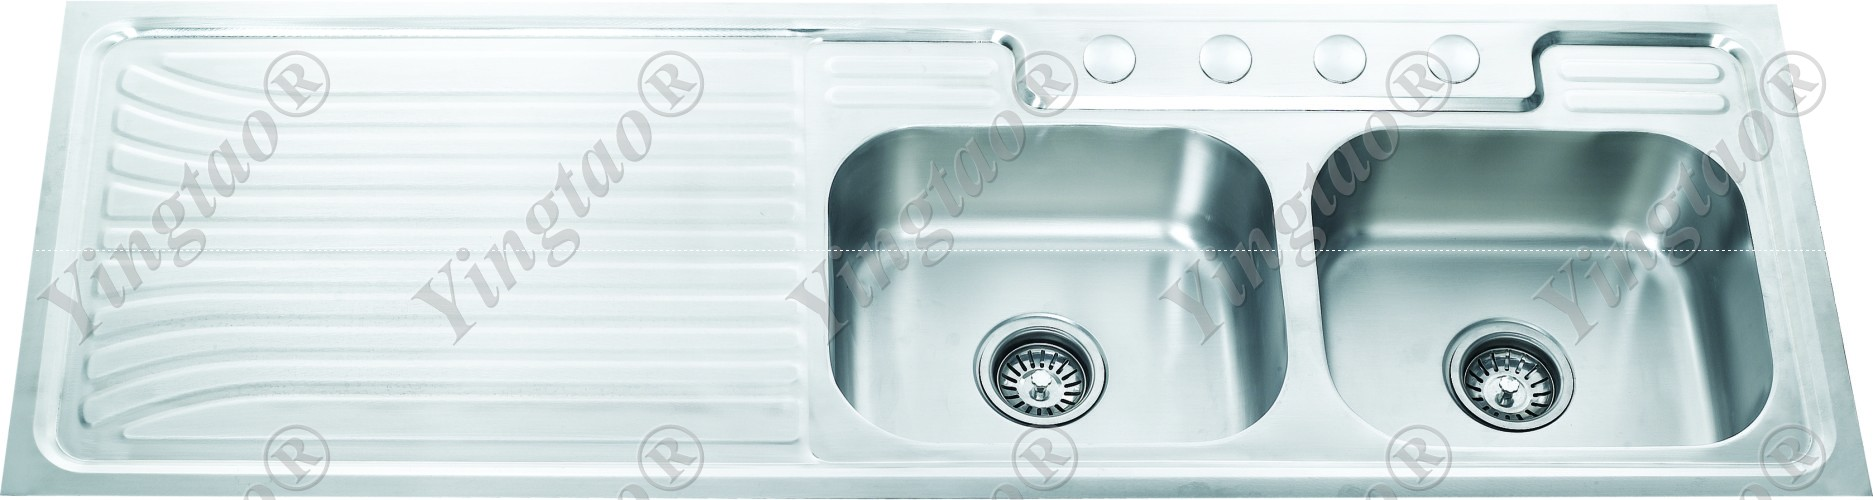 Stainless steel sink DS1500C